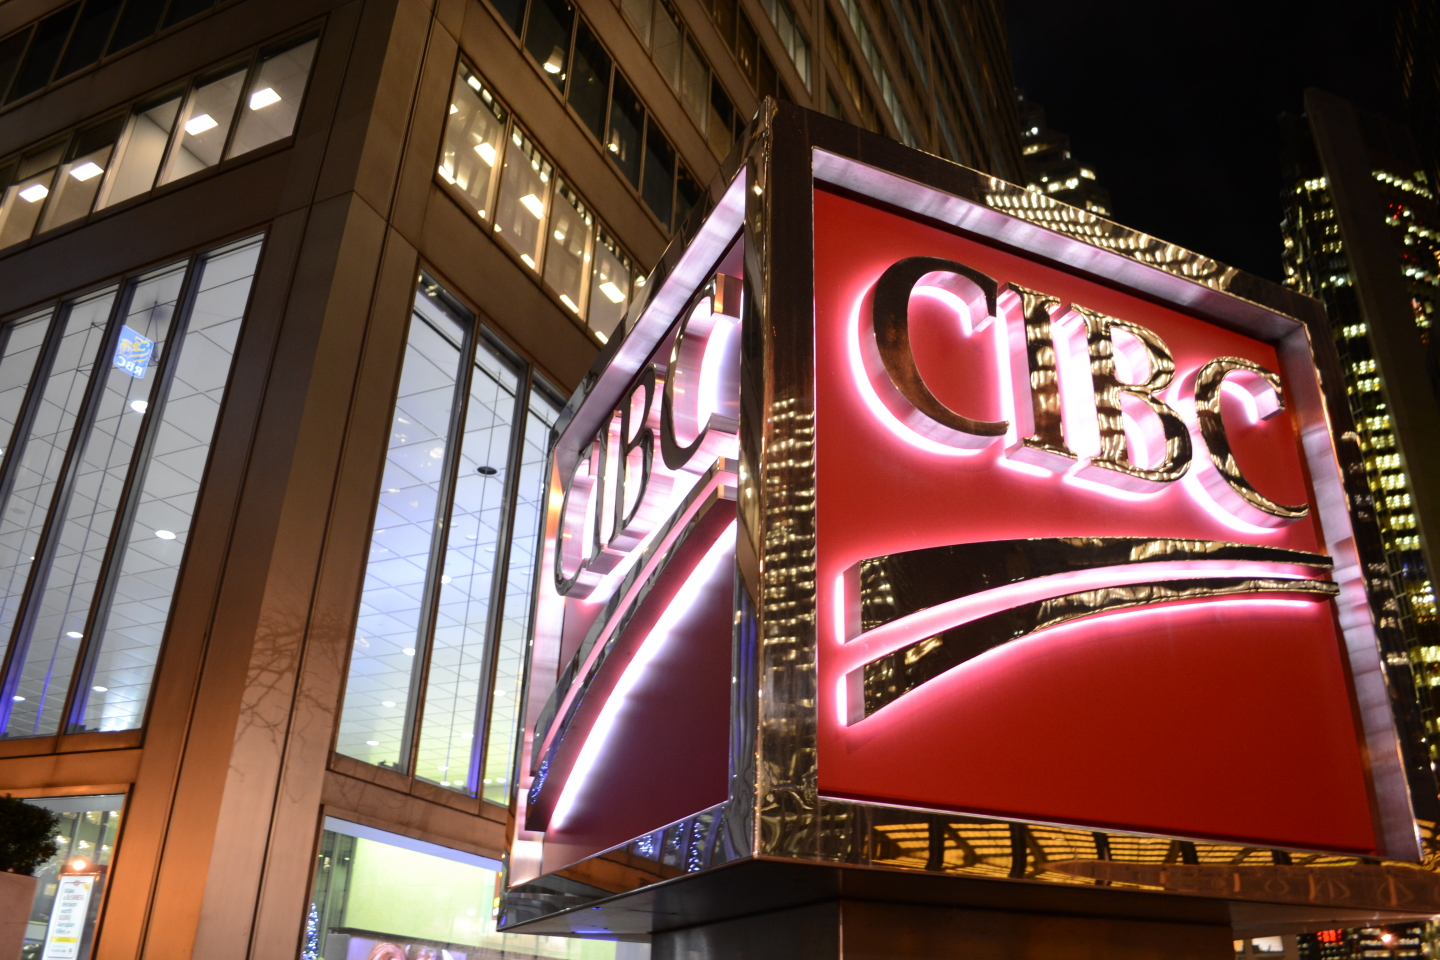 This photo is of the CIBC logo outside of the building. The CIBC logo is red and yellow and lit up in the dark.